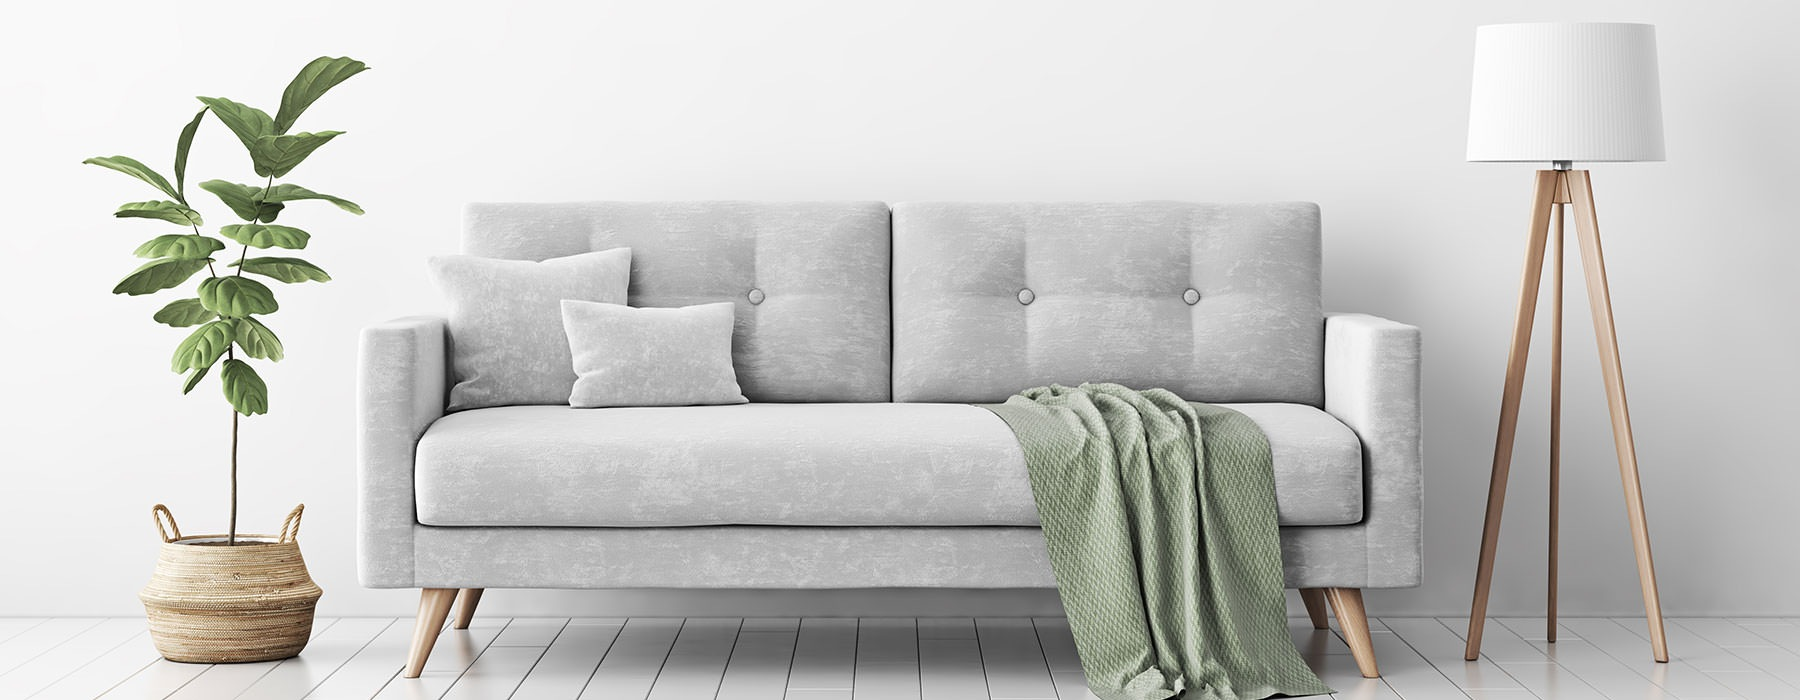 lifestyle image of a couch beside a plant and a lamp